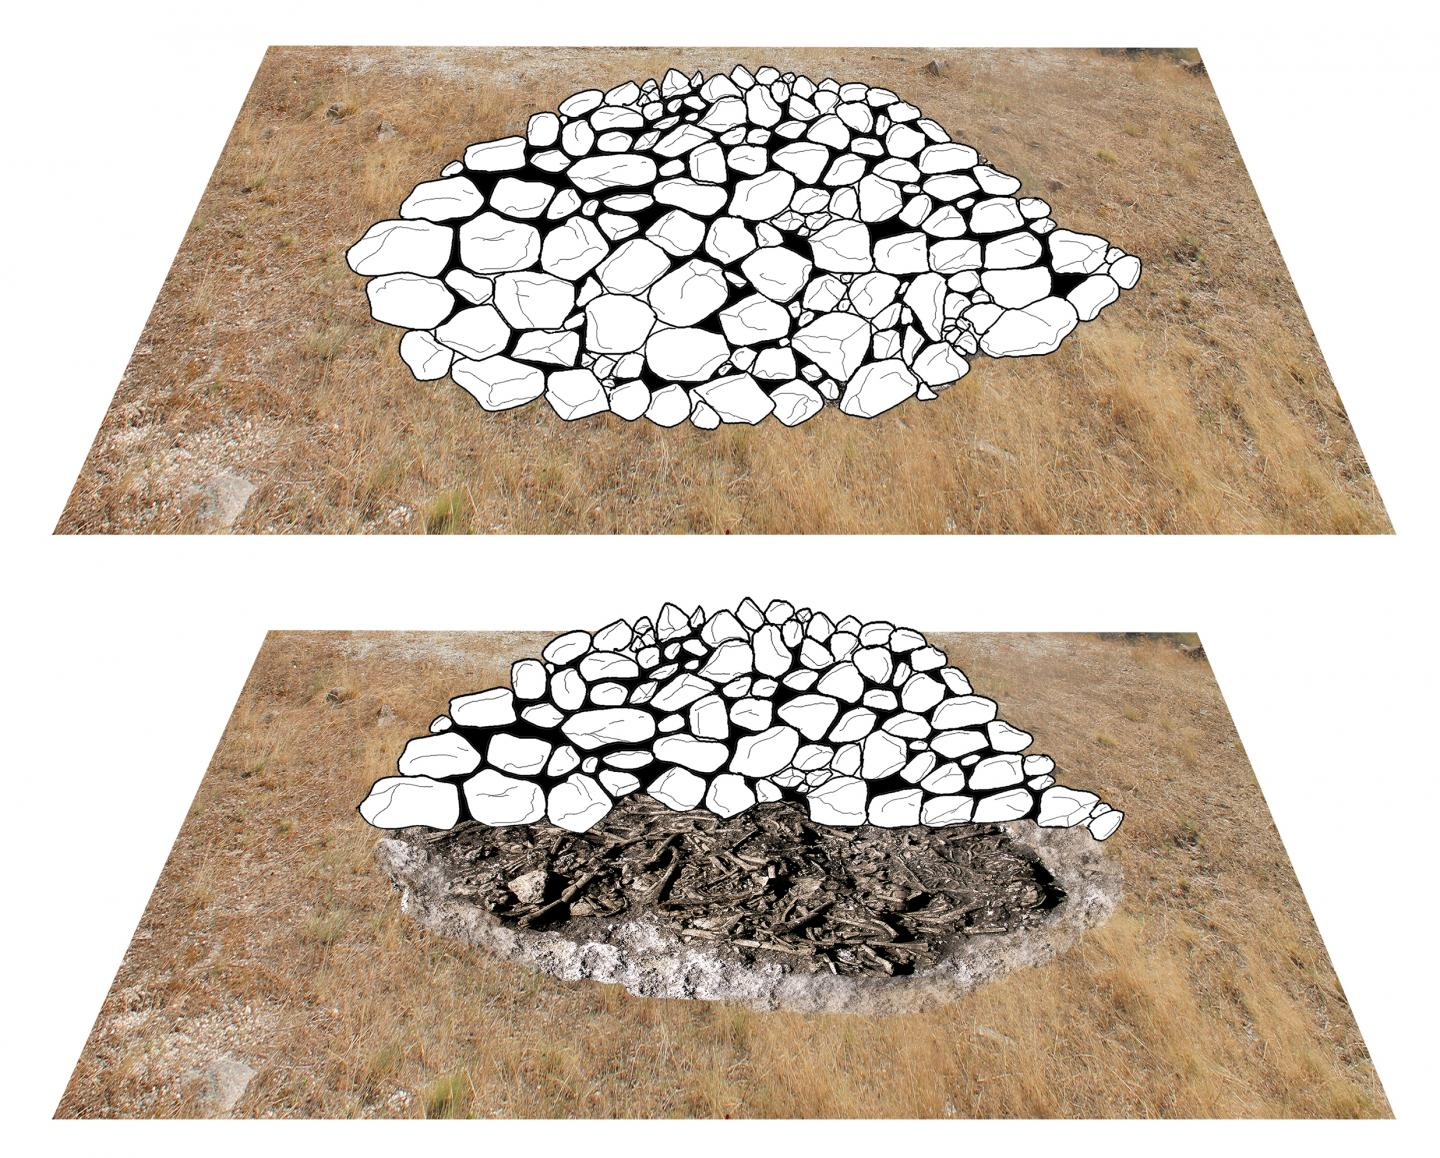 Megalithic mound by University of Basel, Integrative Prehistory and Archaeological Science